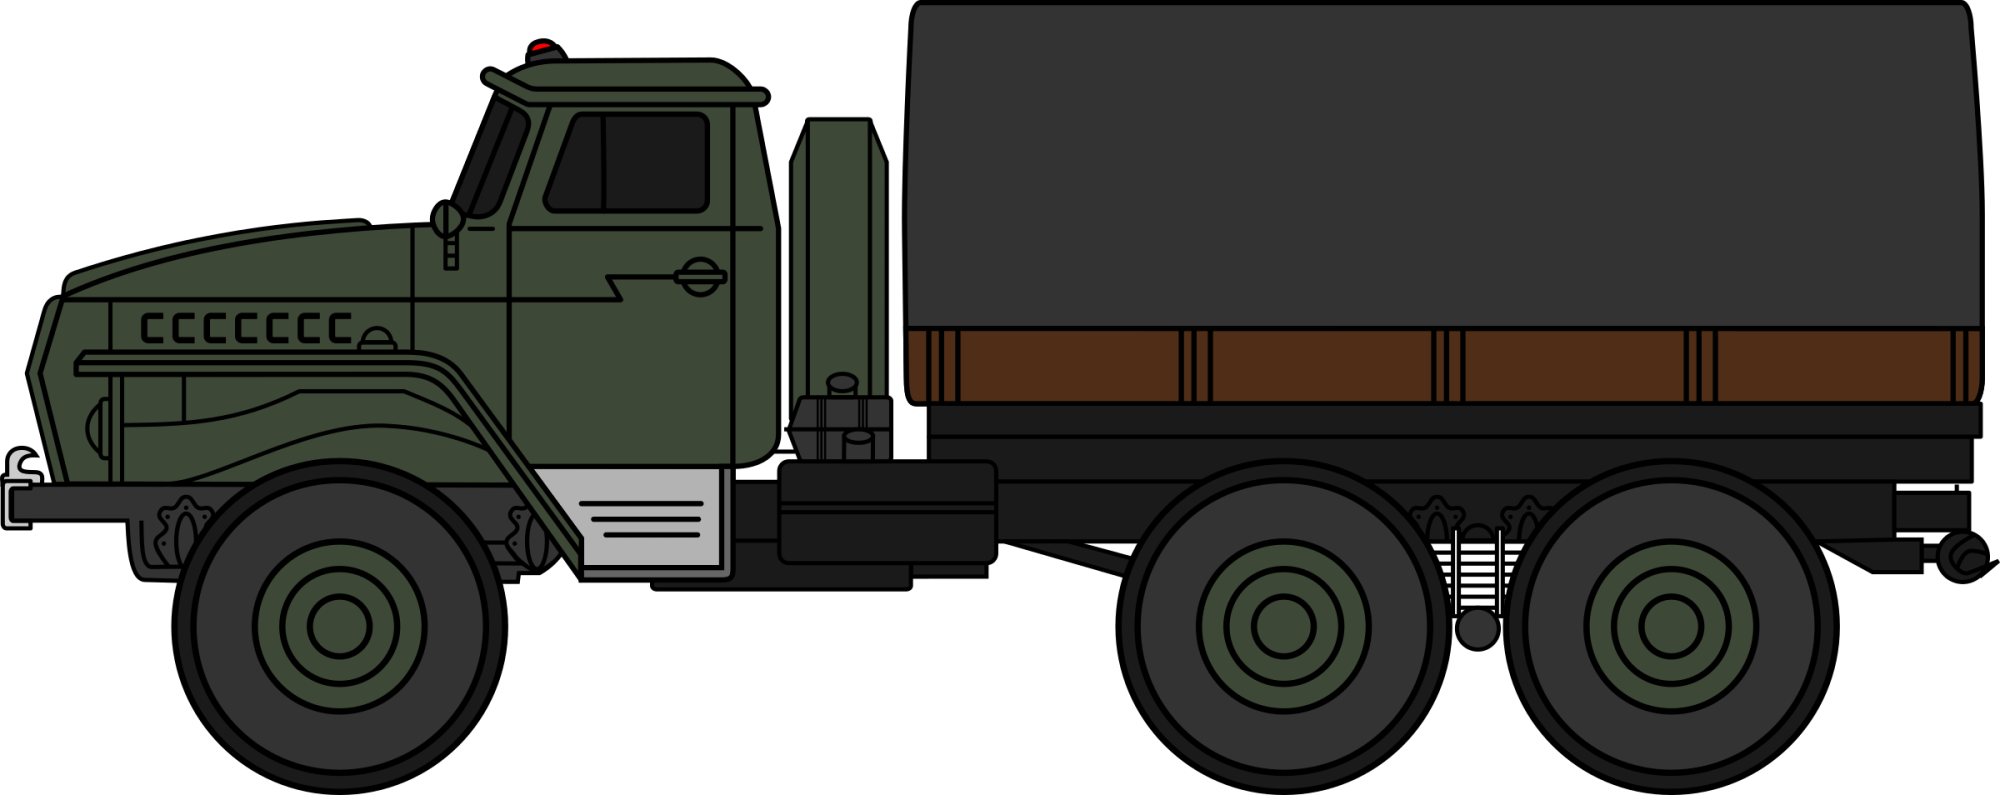 hight resolution of soldiers clipart truck ural military coloured big